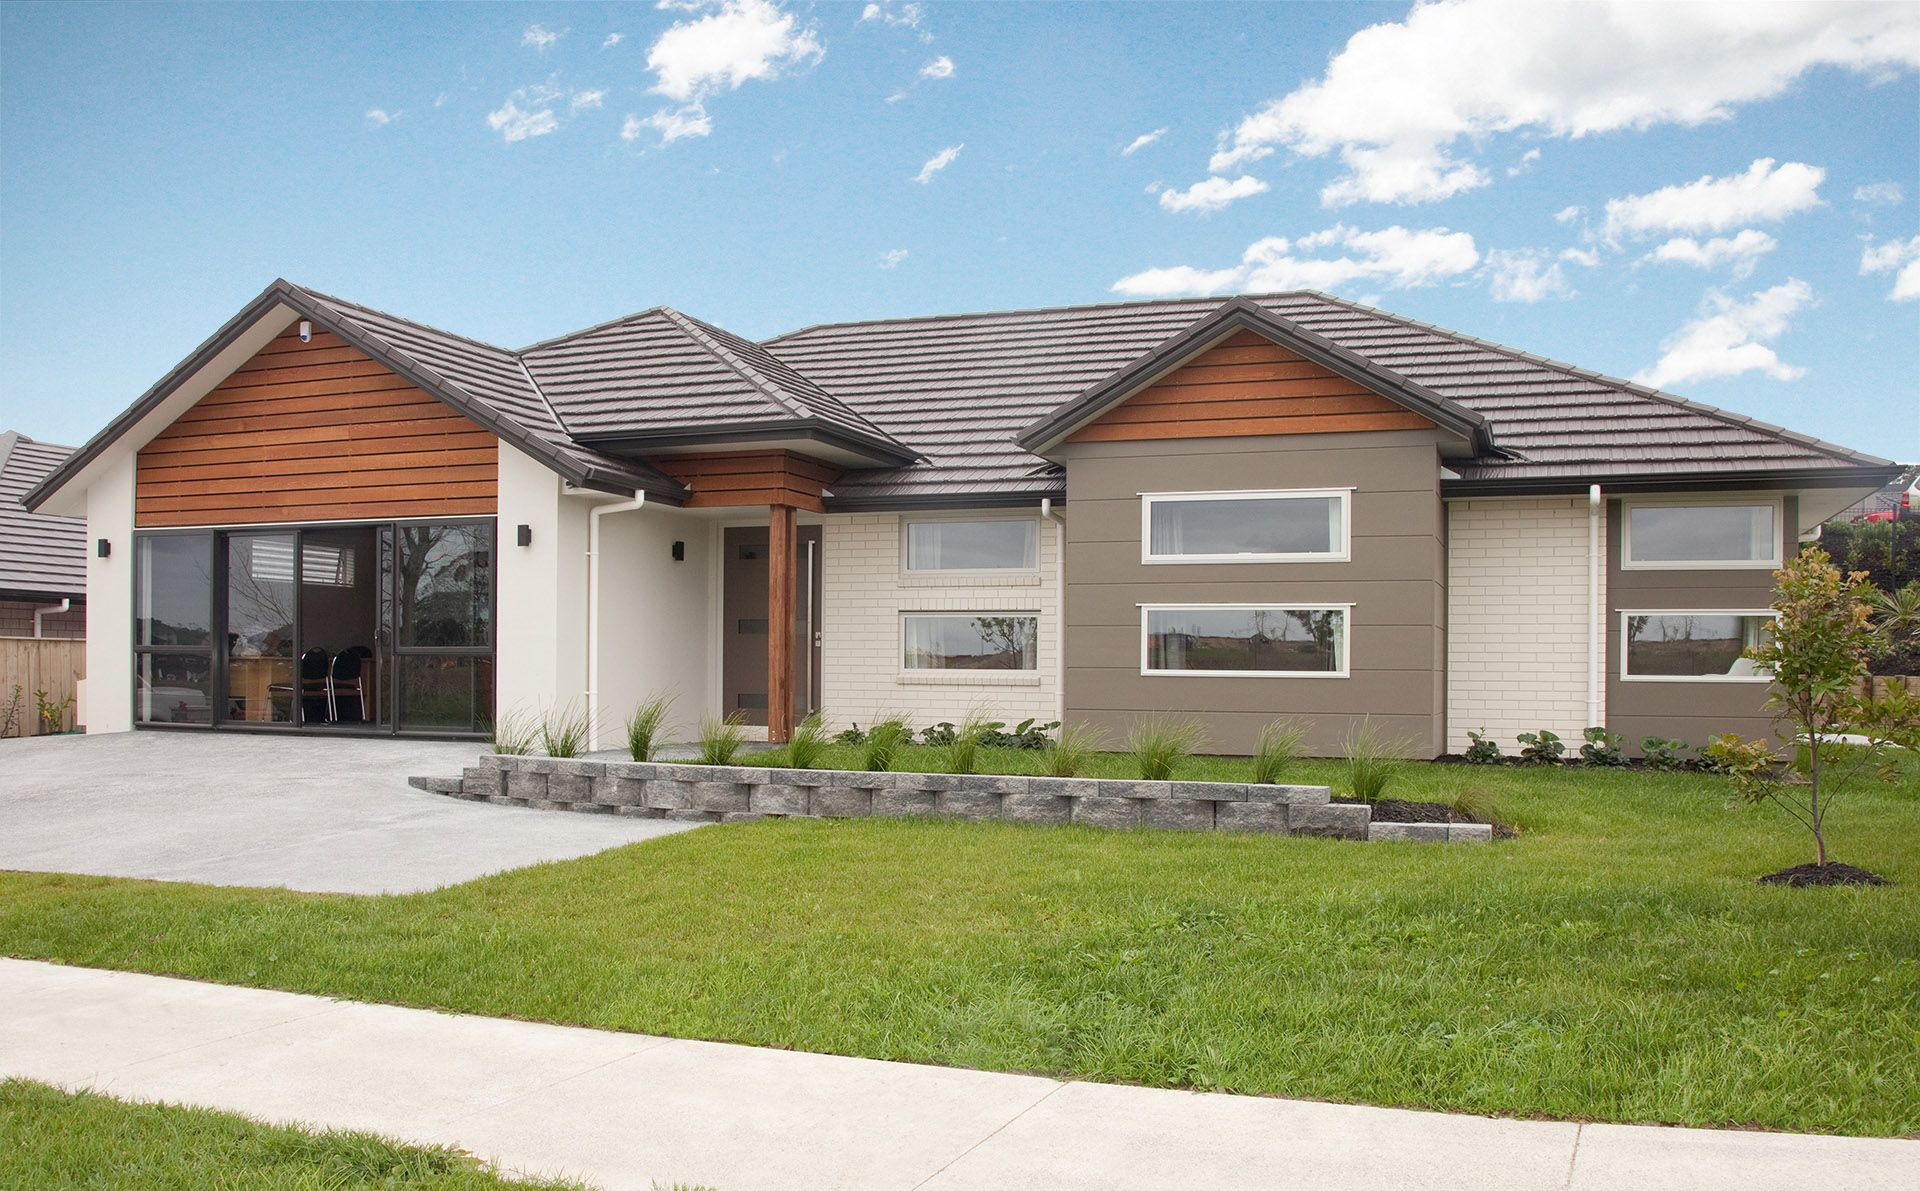 Showhomes millwater gj gardner homes exterior cladding cedar weatherboard sycon stria in resene triple stonewall nz brick distributors pearl brick